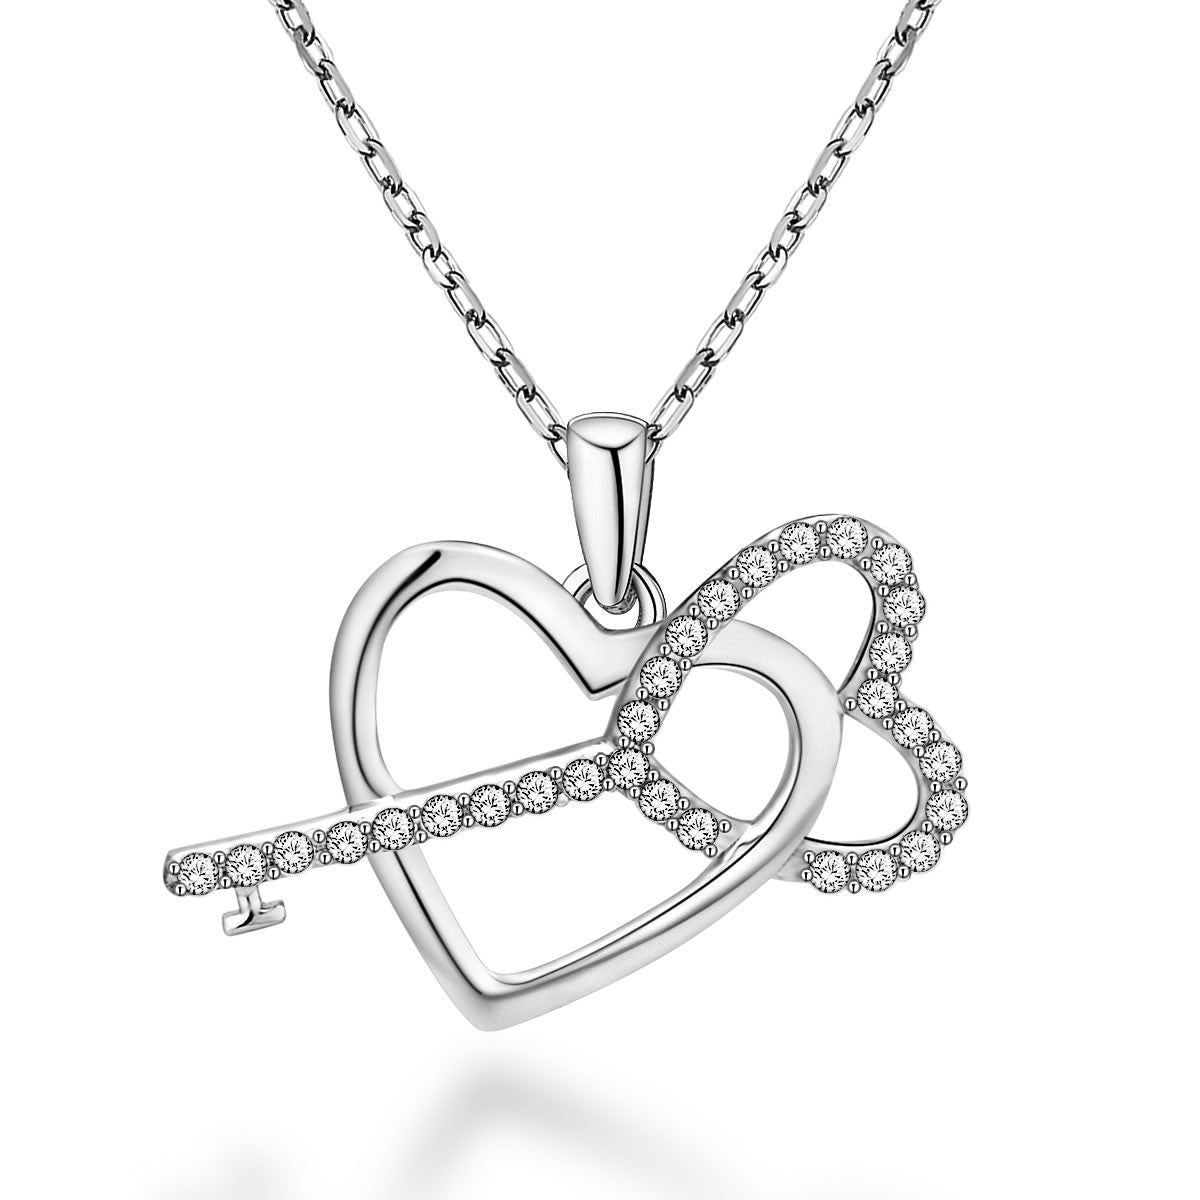 Fashion Heart-shaped Key Design 925 Sterling Silver Pendant Necklace E061749001